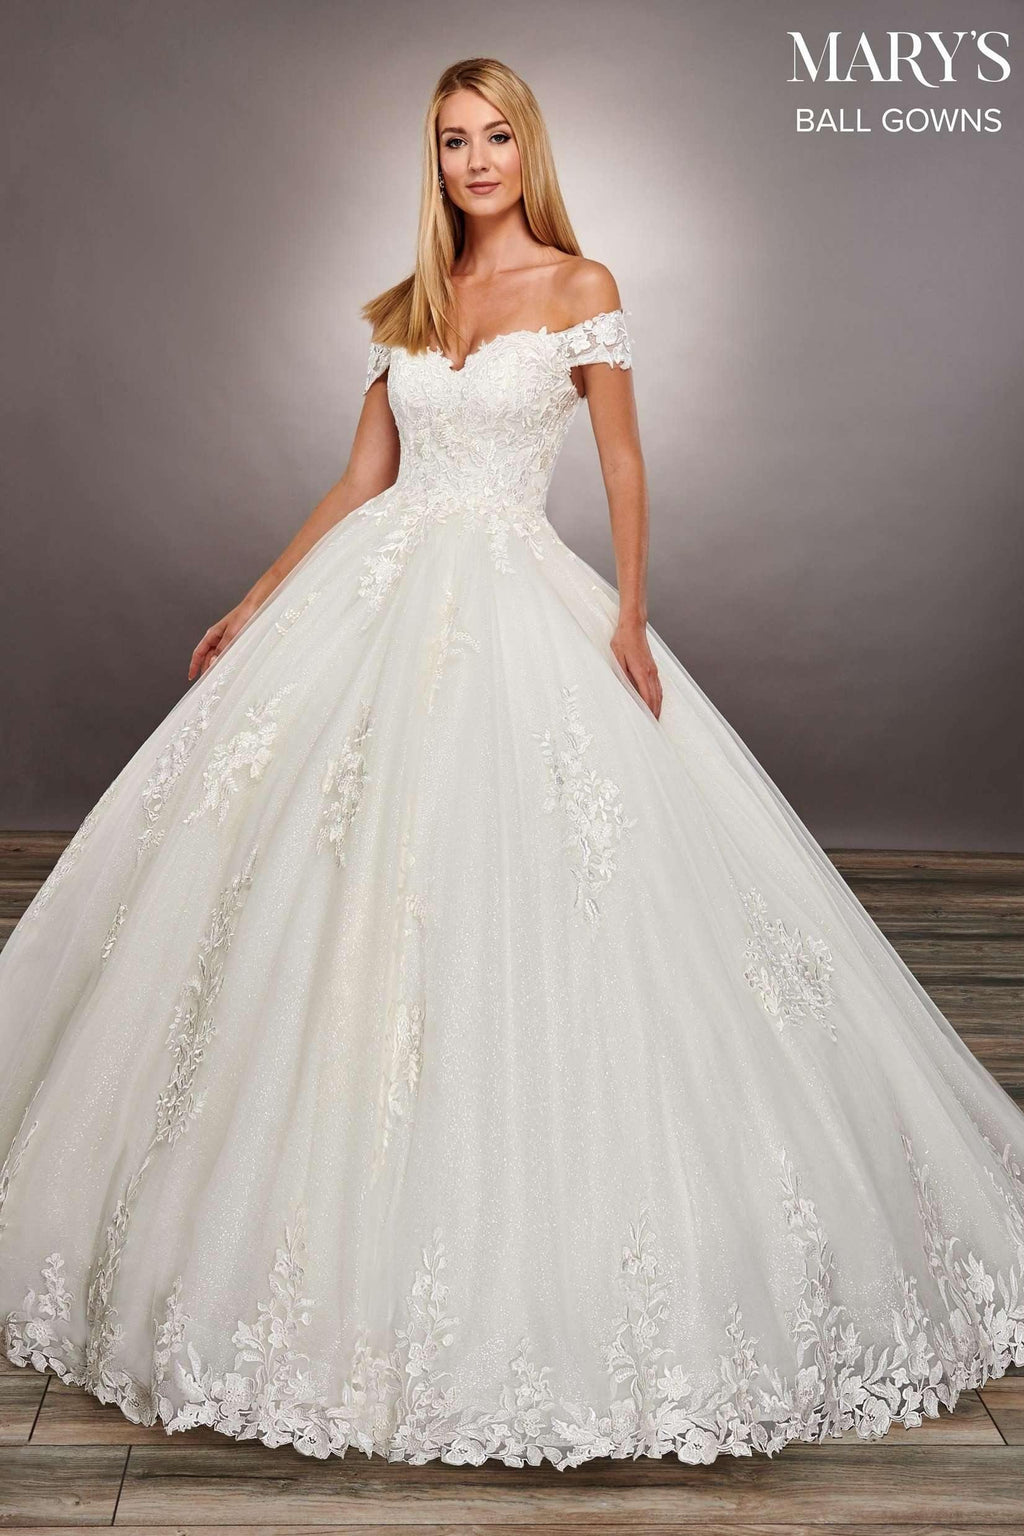 COMING SOON - MARY'S BRIDAL - Tamara - Adore Bridal and Occasion Wear